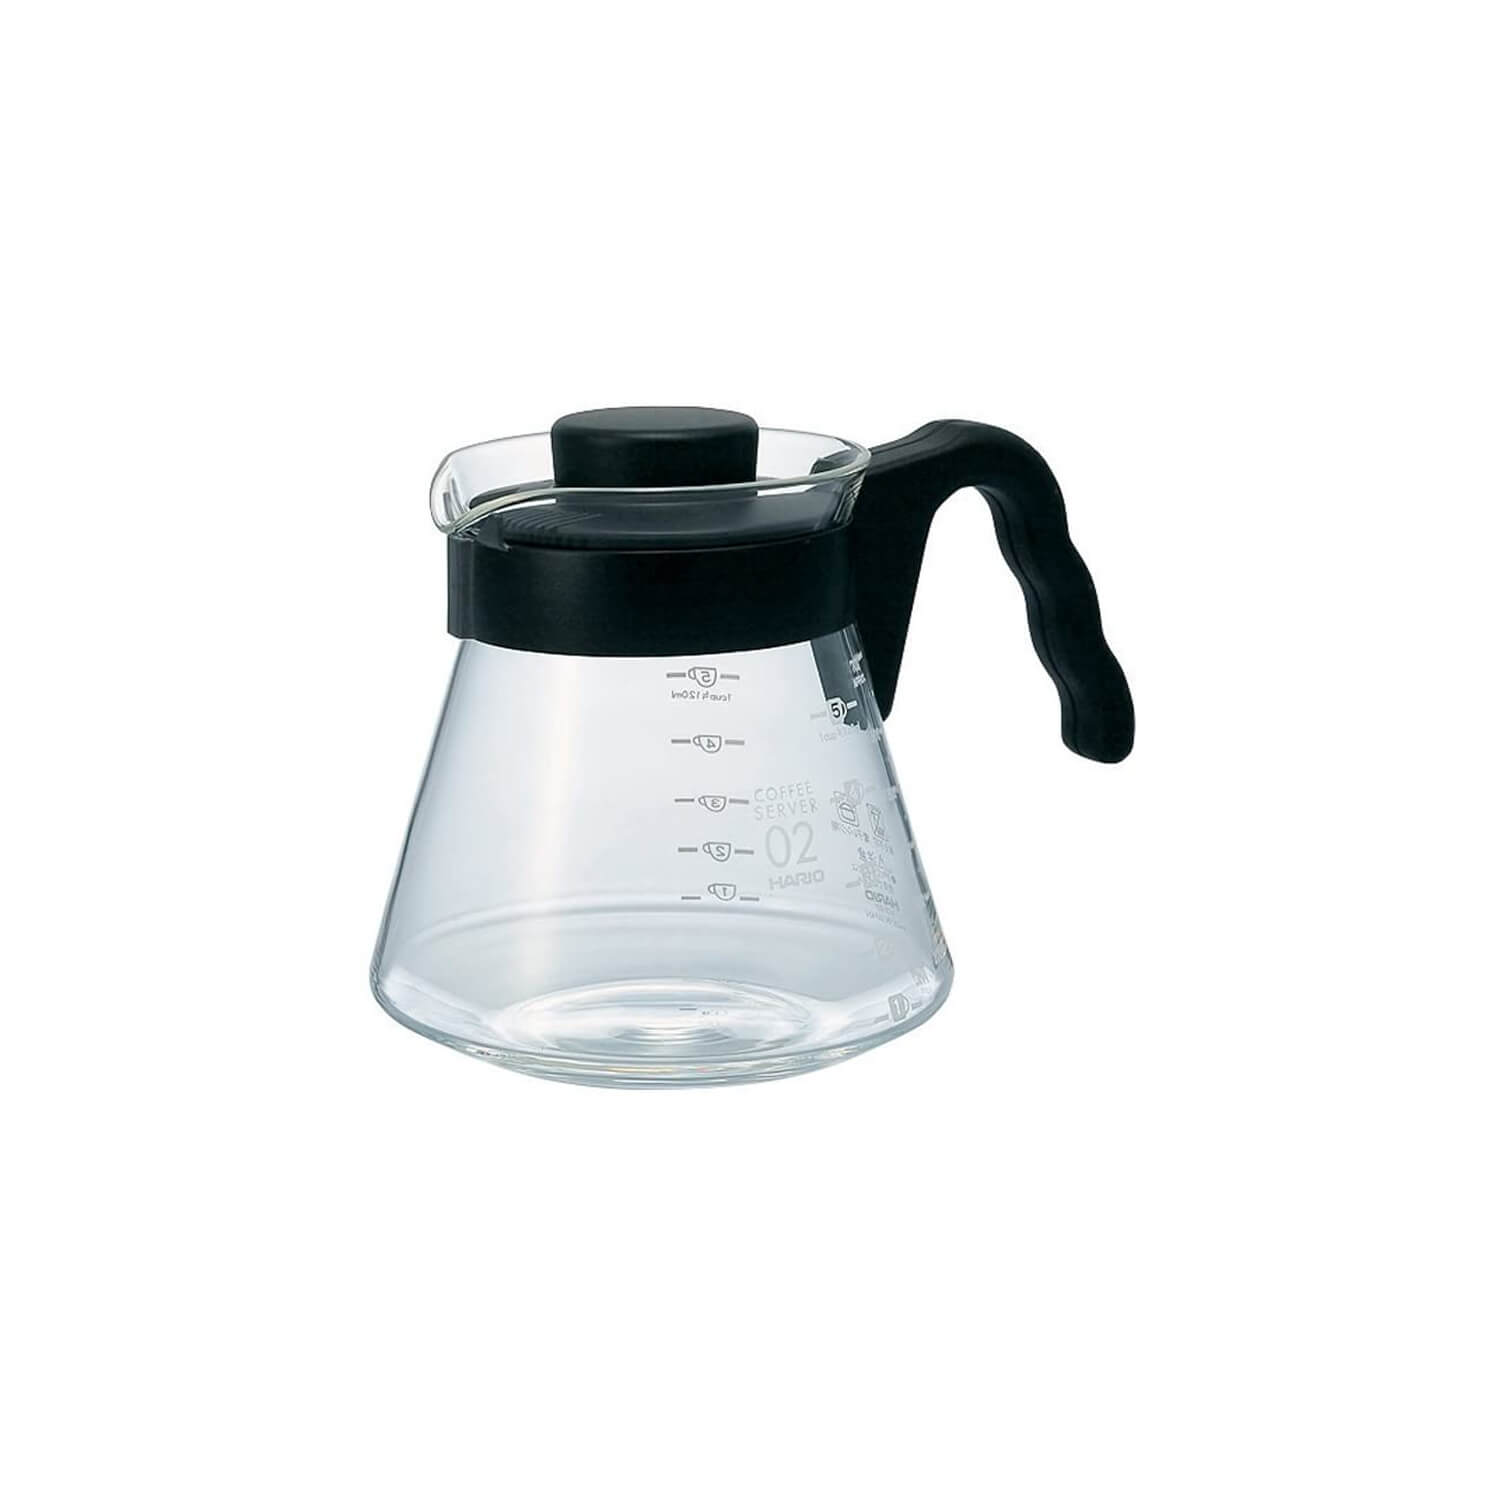 Hario - V60 Range Server - 02 - Clear - Black Handle - 700 ml